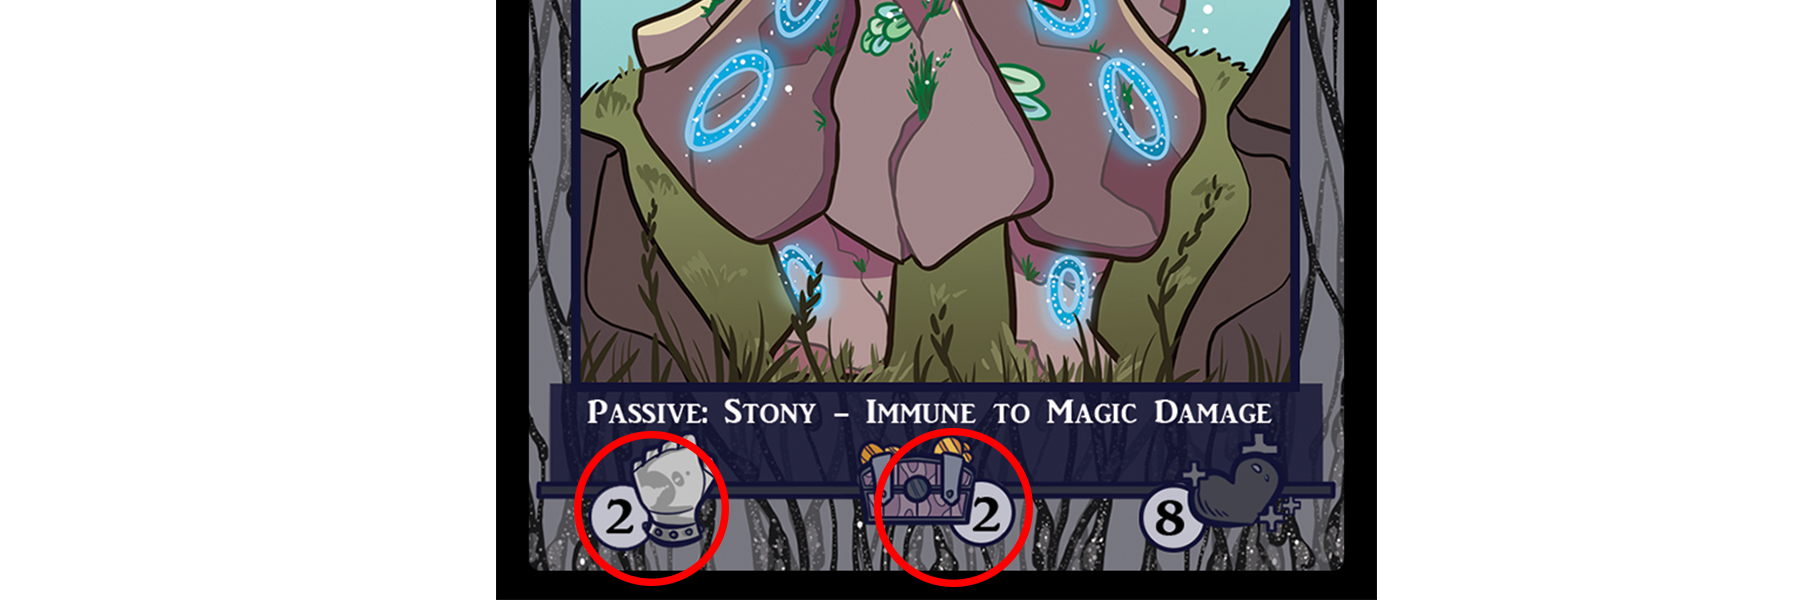 Each monster has an attack value, and some card text which dictates how it interacts with the game along with how many loot cards they drop when killed, indicated by the centre chest symbol.